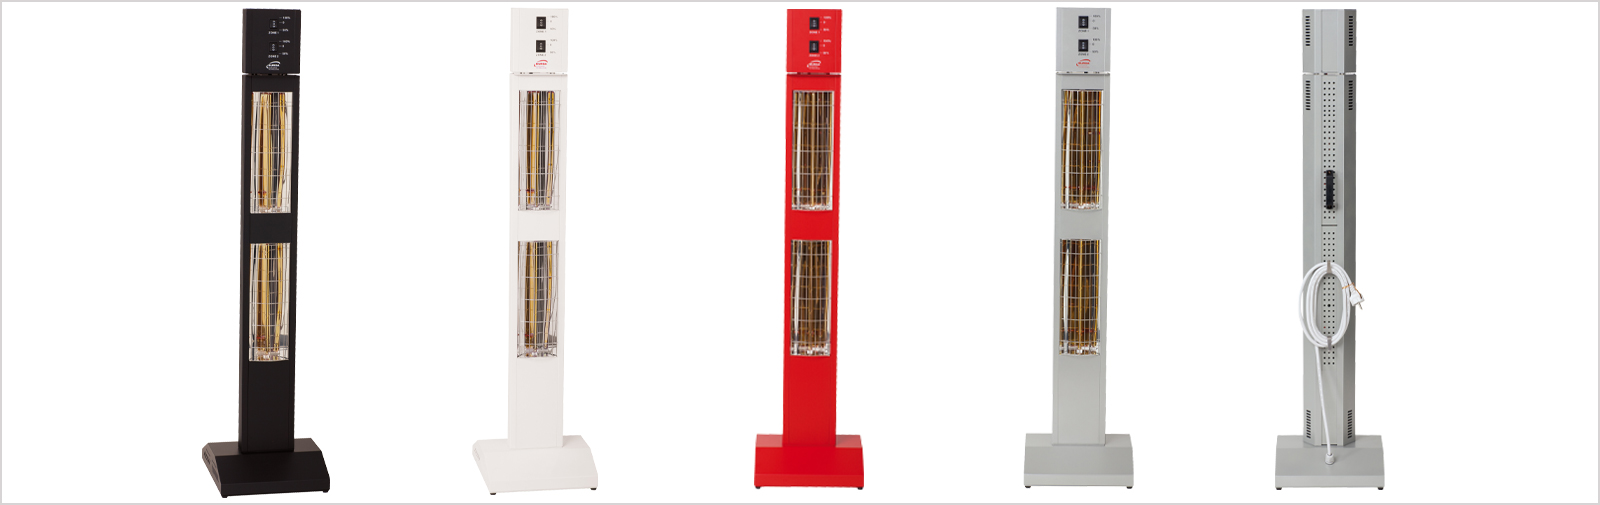 infrared upright radiant heater Smart Tower IP24